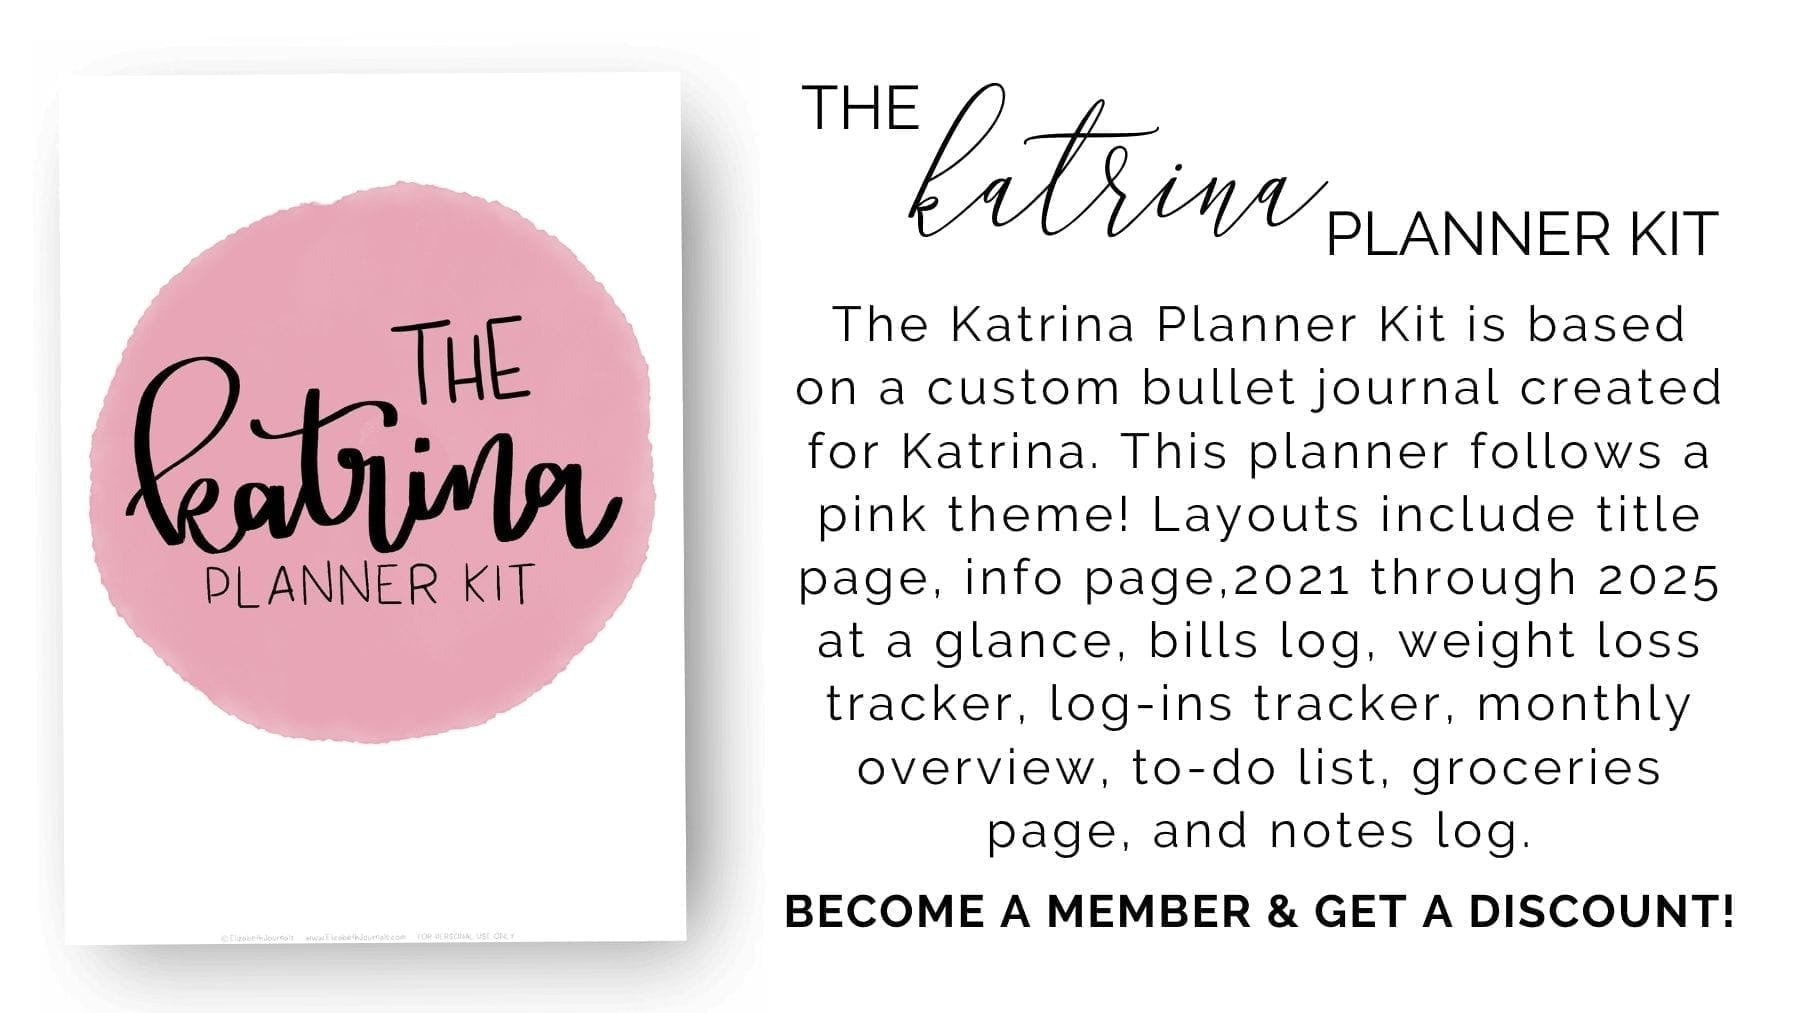 The Katrina Planner Kit is based on a custom bullet journal created for Katrina. This planner follows a pink theme! Layouts include a title page, info page,2021 through 2025 at a glance, bills log, weight loss tracker, log-ins tracker, monthly overview, to-do list, 'groceries' list page, and notes log.